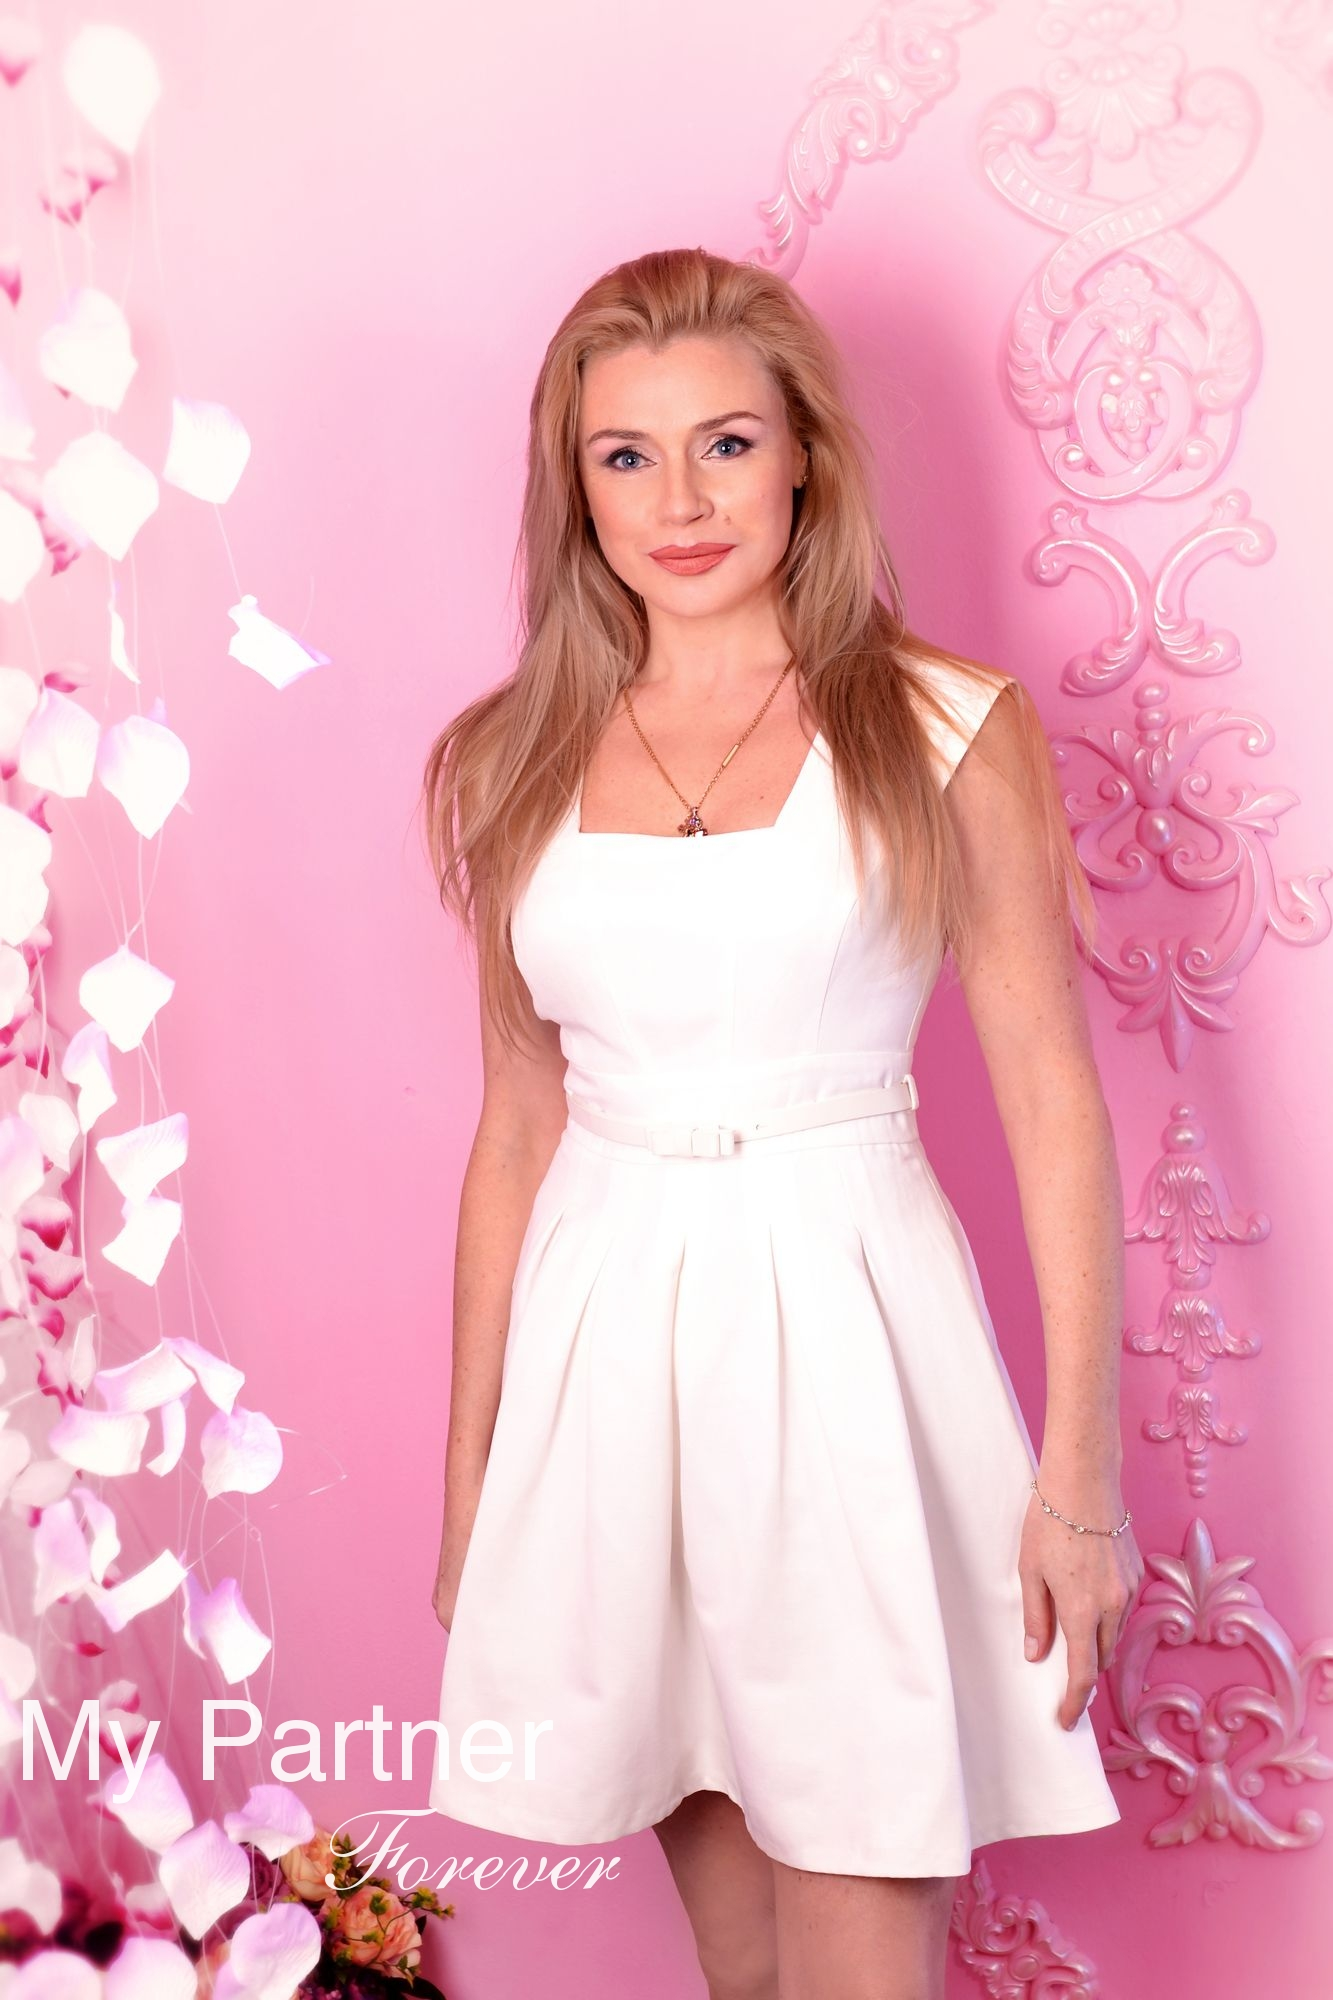 Datingsite to Meet Stunning Ukrainian Girl Oksana from Kharkov, Ukraine